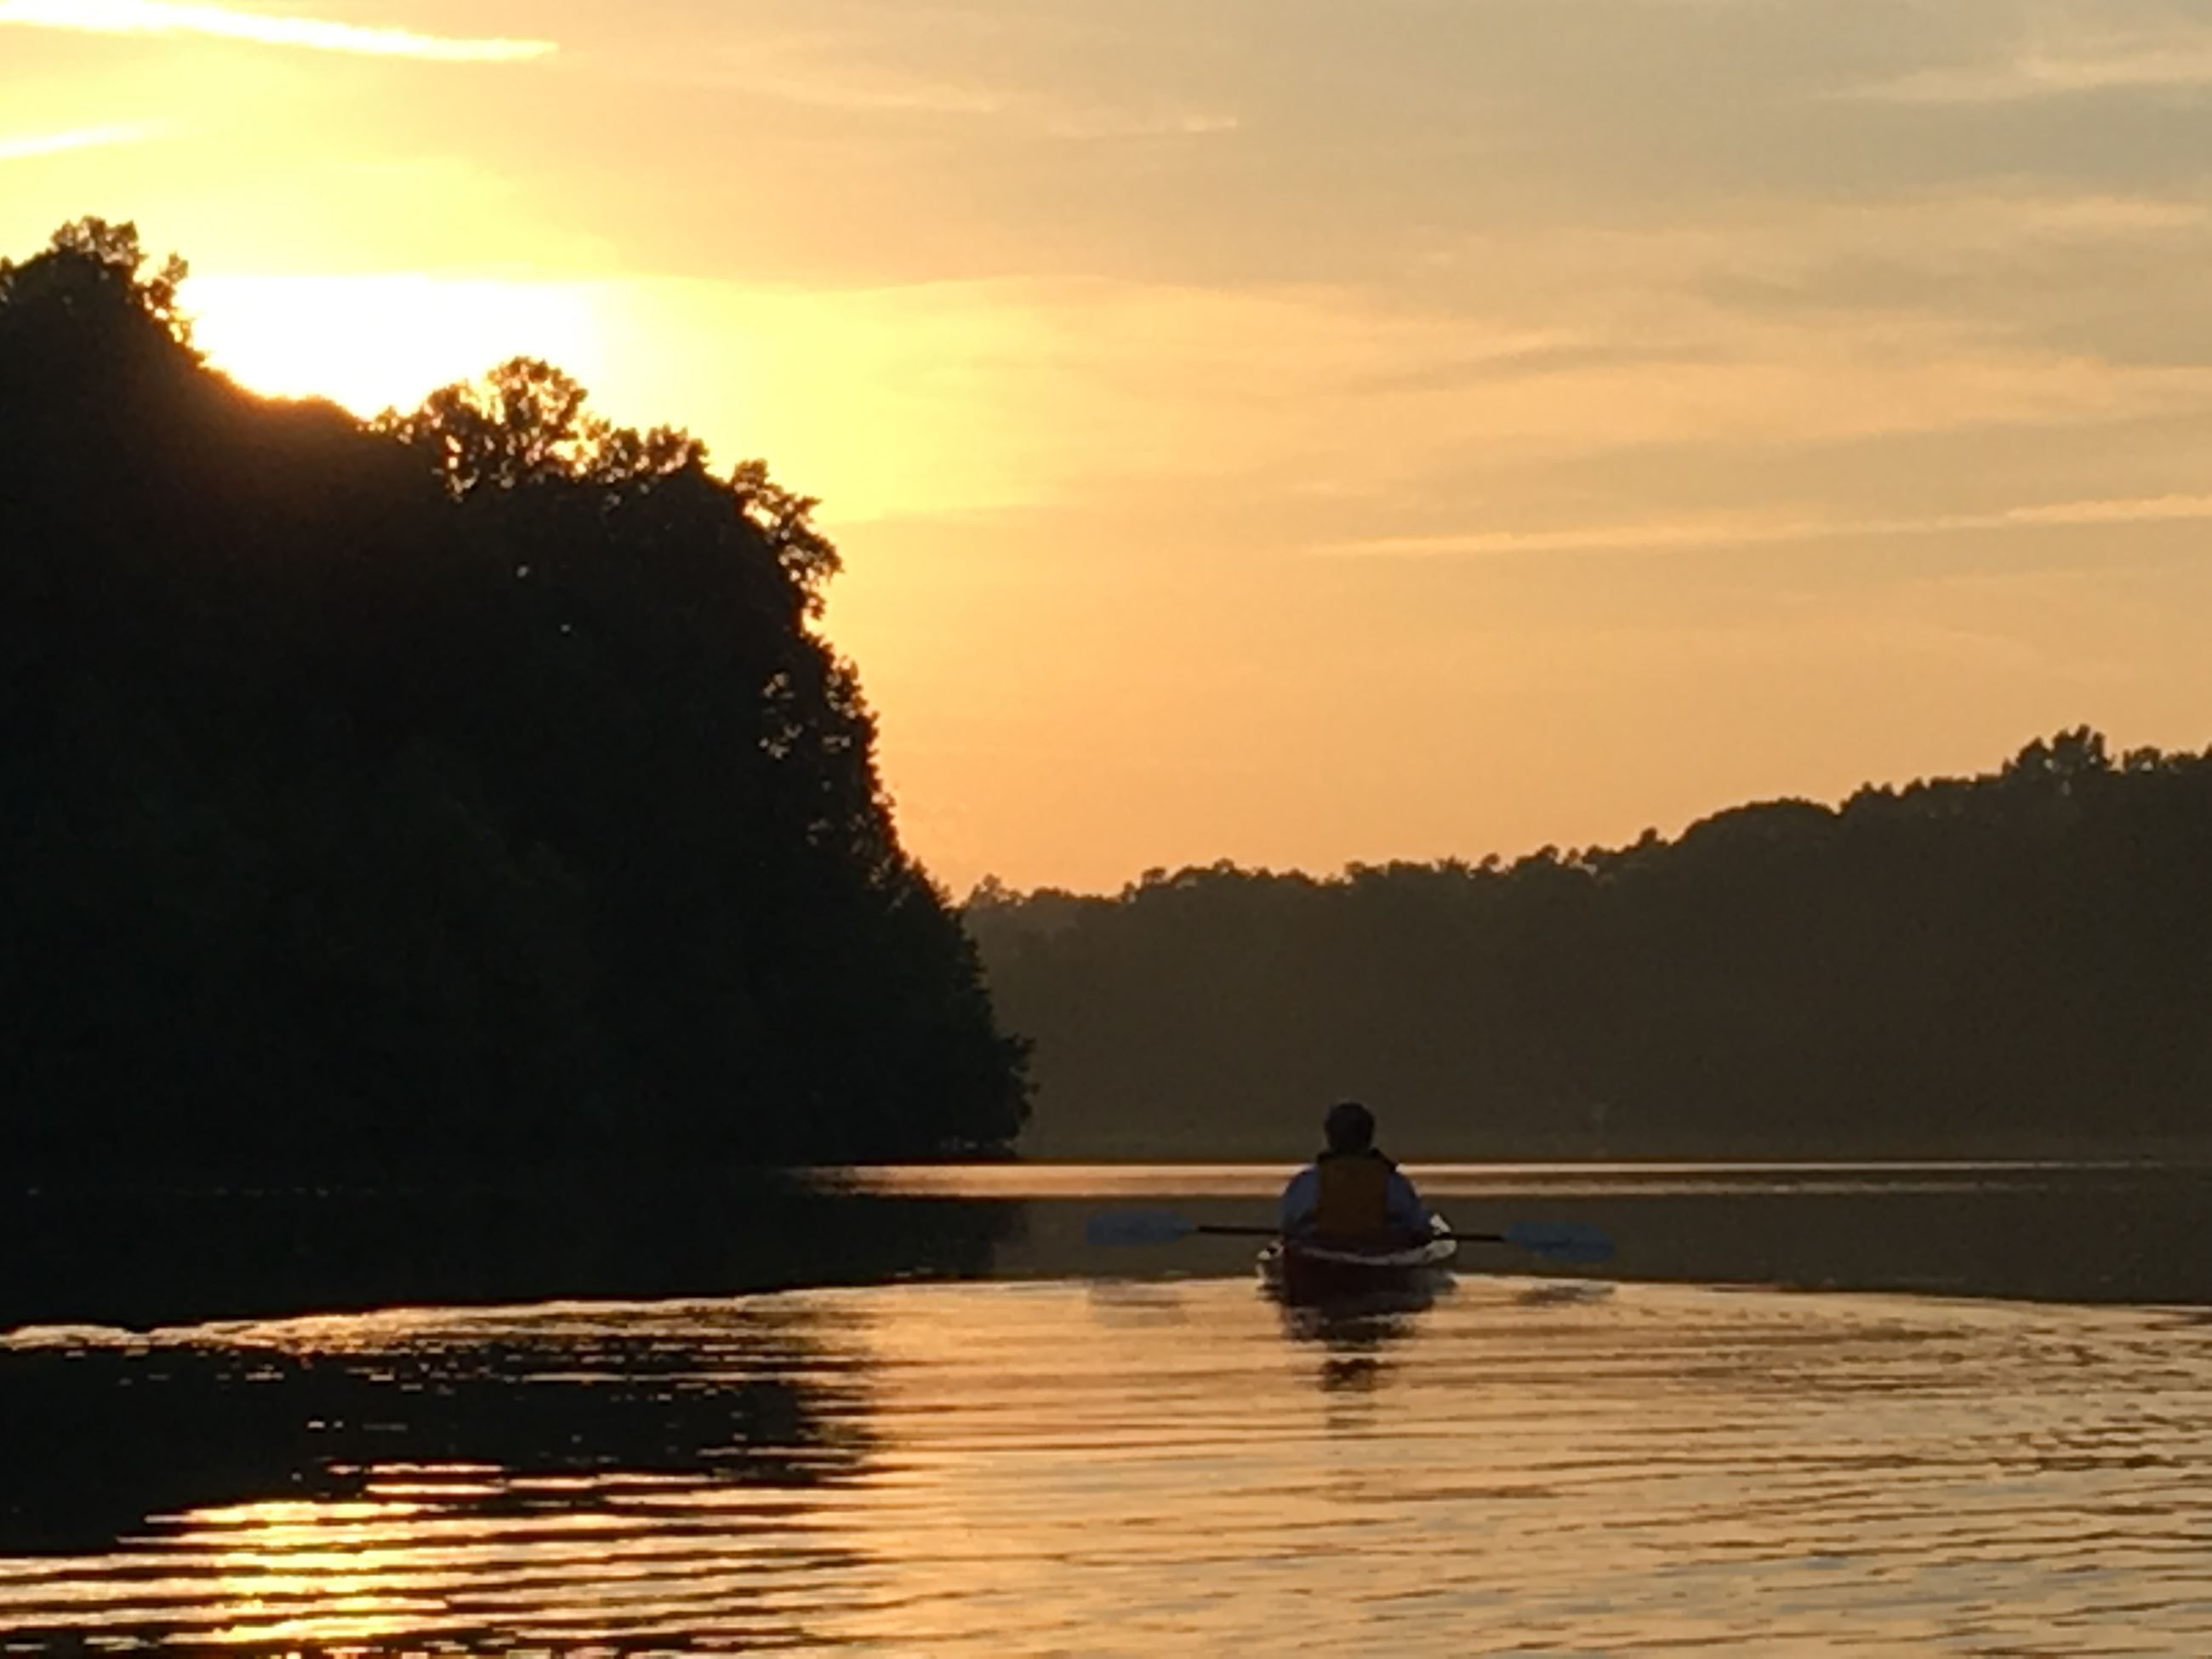 Sunset Paddle 0628 11